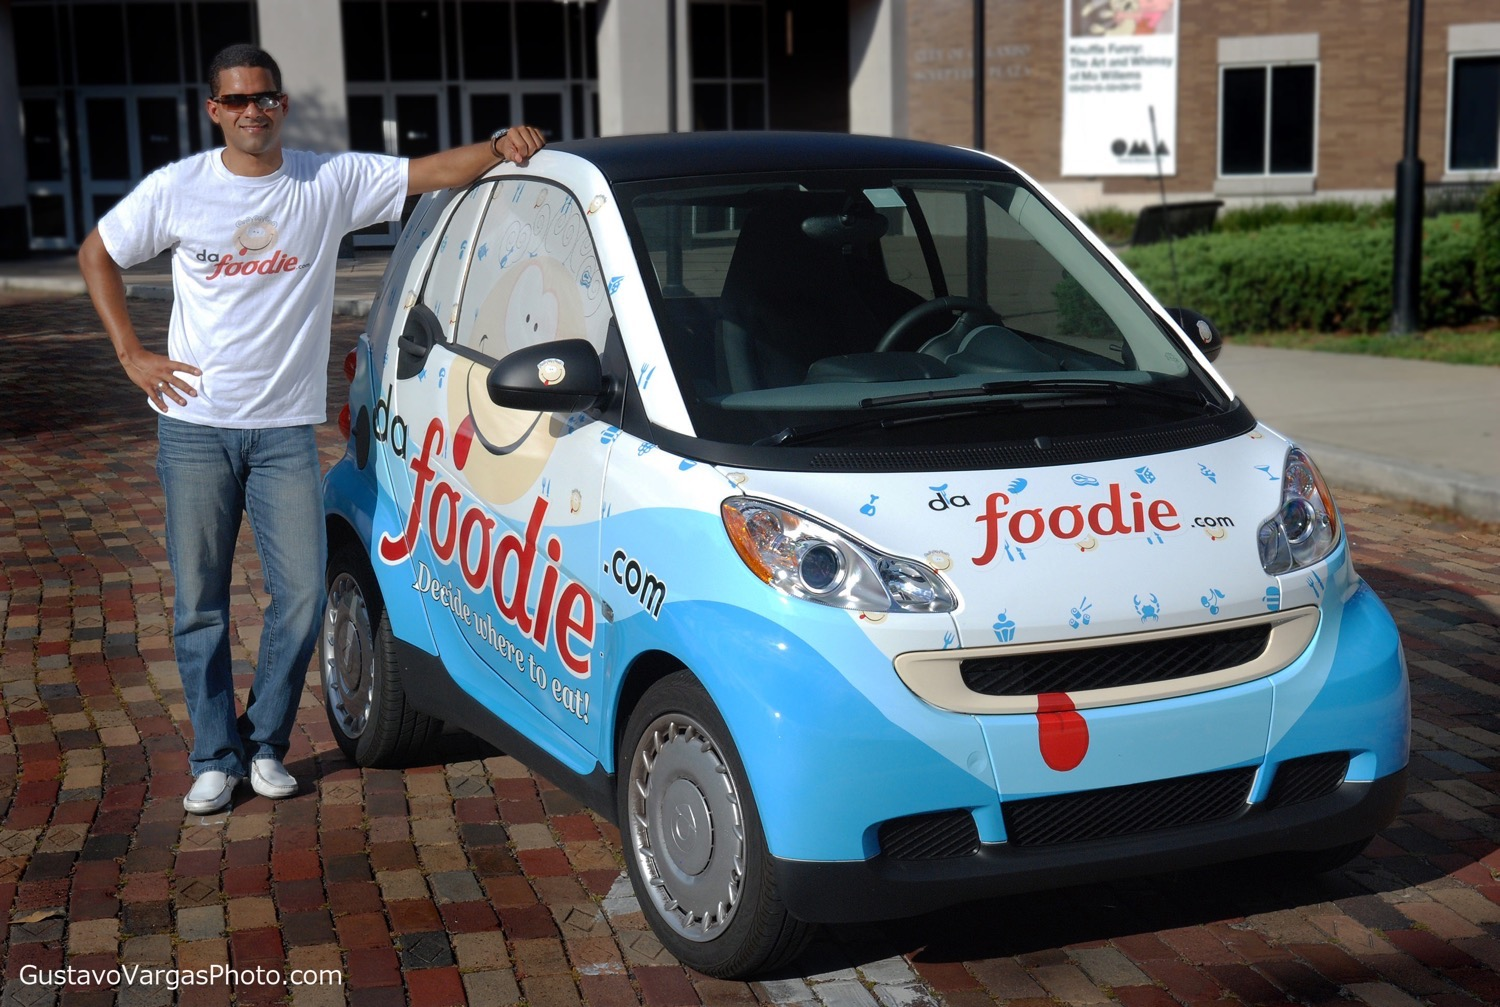 Dafoodie Car at the Orlando Museum of Art. Photo by Gustavo Vargas Photography